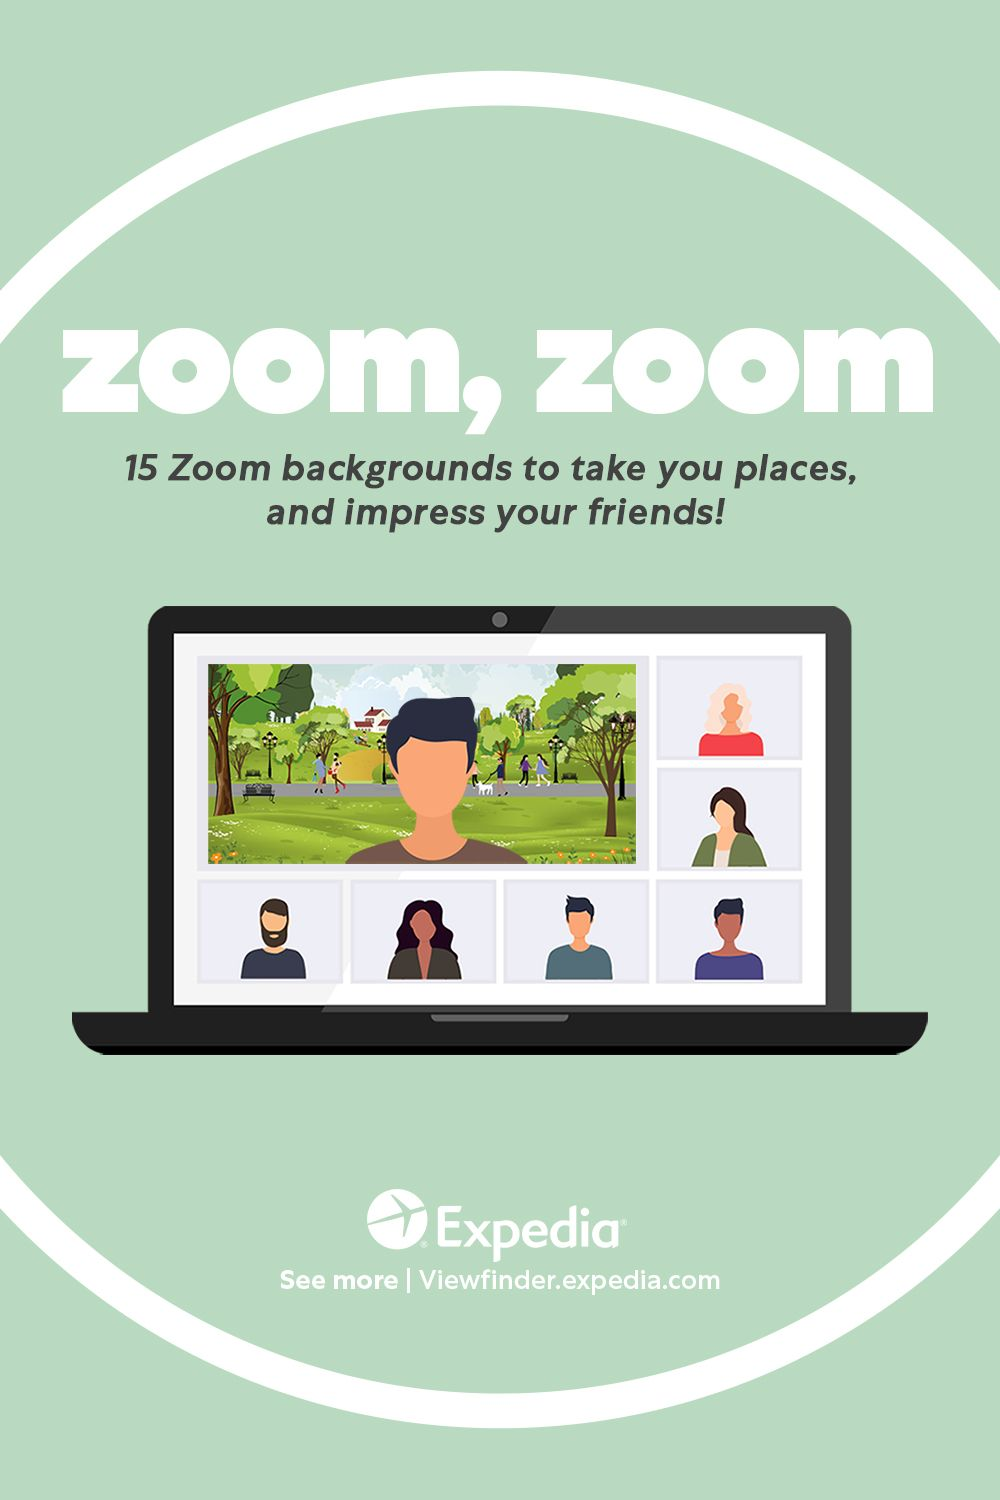 15 Zoom Backgrounds To Put You In The Moment Virtual Travel How To Memorize Things Expedia